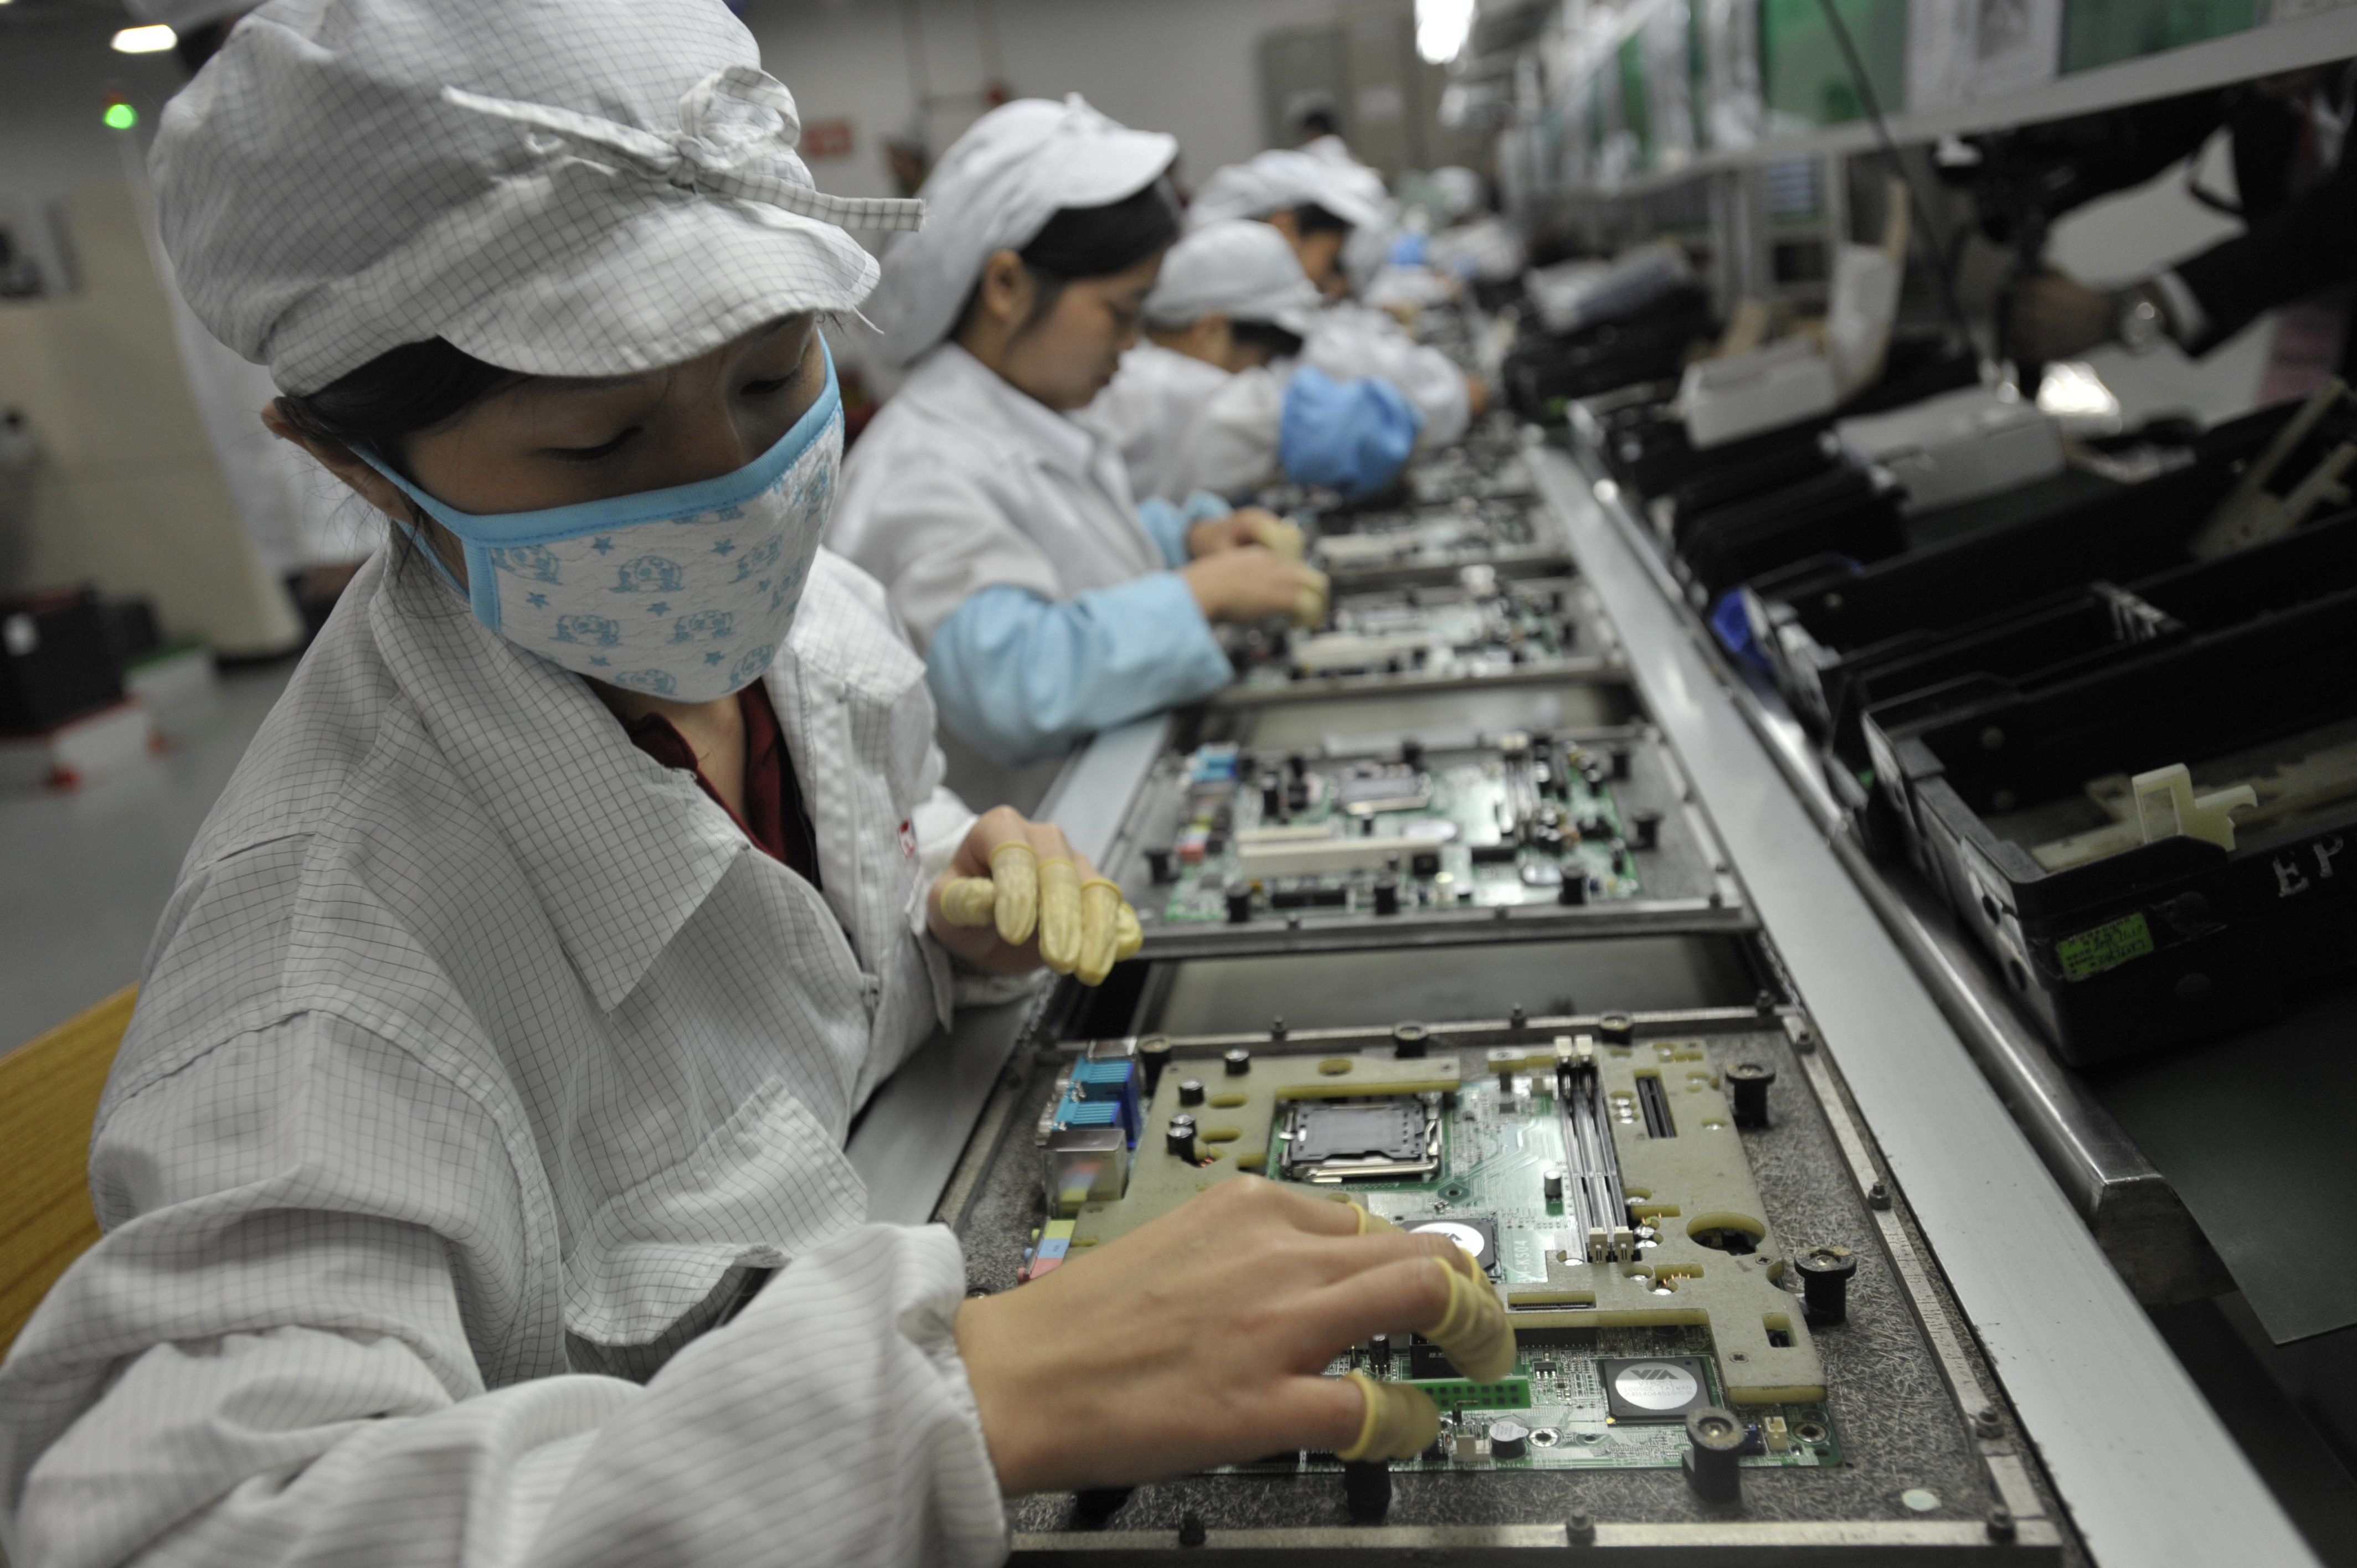 Student interns 'worked illegal hours' at iPhone factory